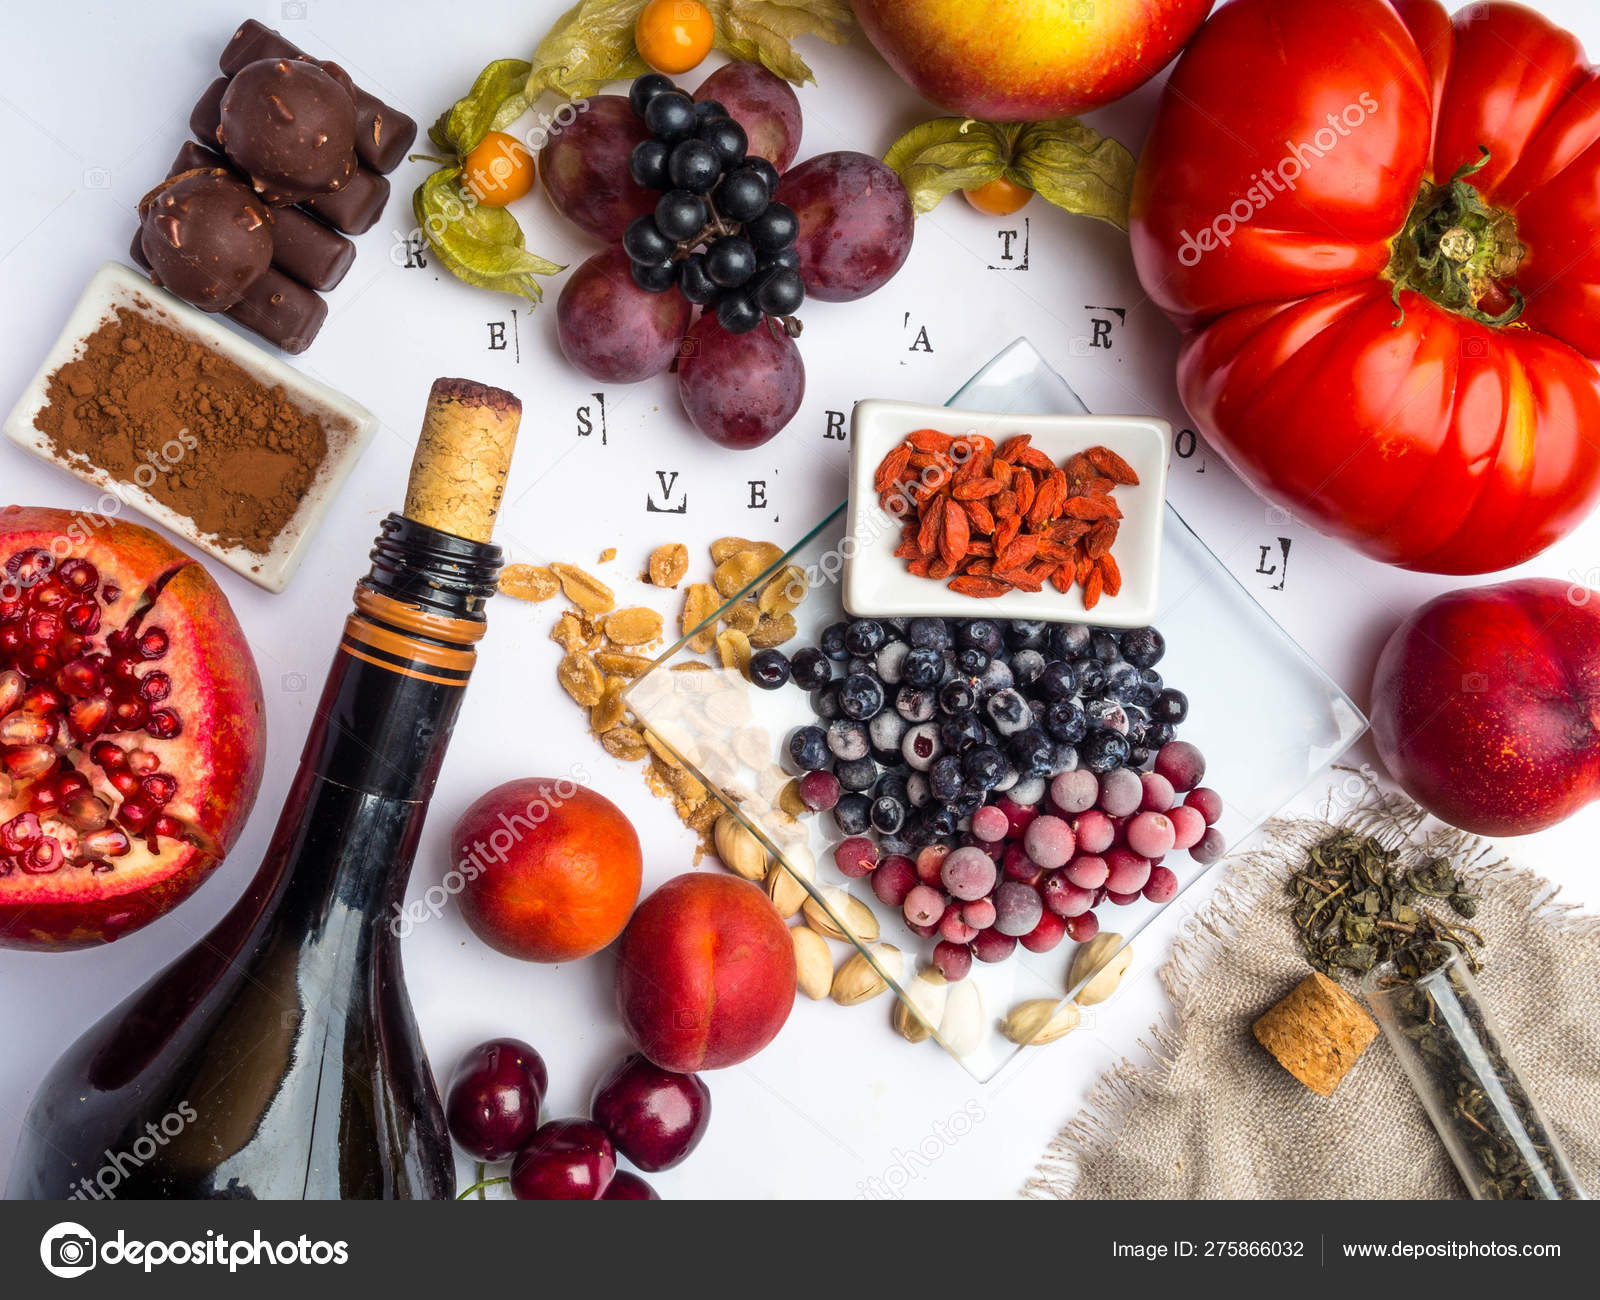 Food Rich With Resveratrol Grapes Pomegranate Green Tea Physalis Cranberry Cherry Tomatoes Goji Peanuts Blueberry Dark Chocolate Cocoa Red Wine Stock Photo C Dian4ikn Gmail Com 275866032